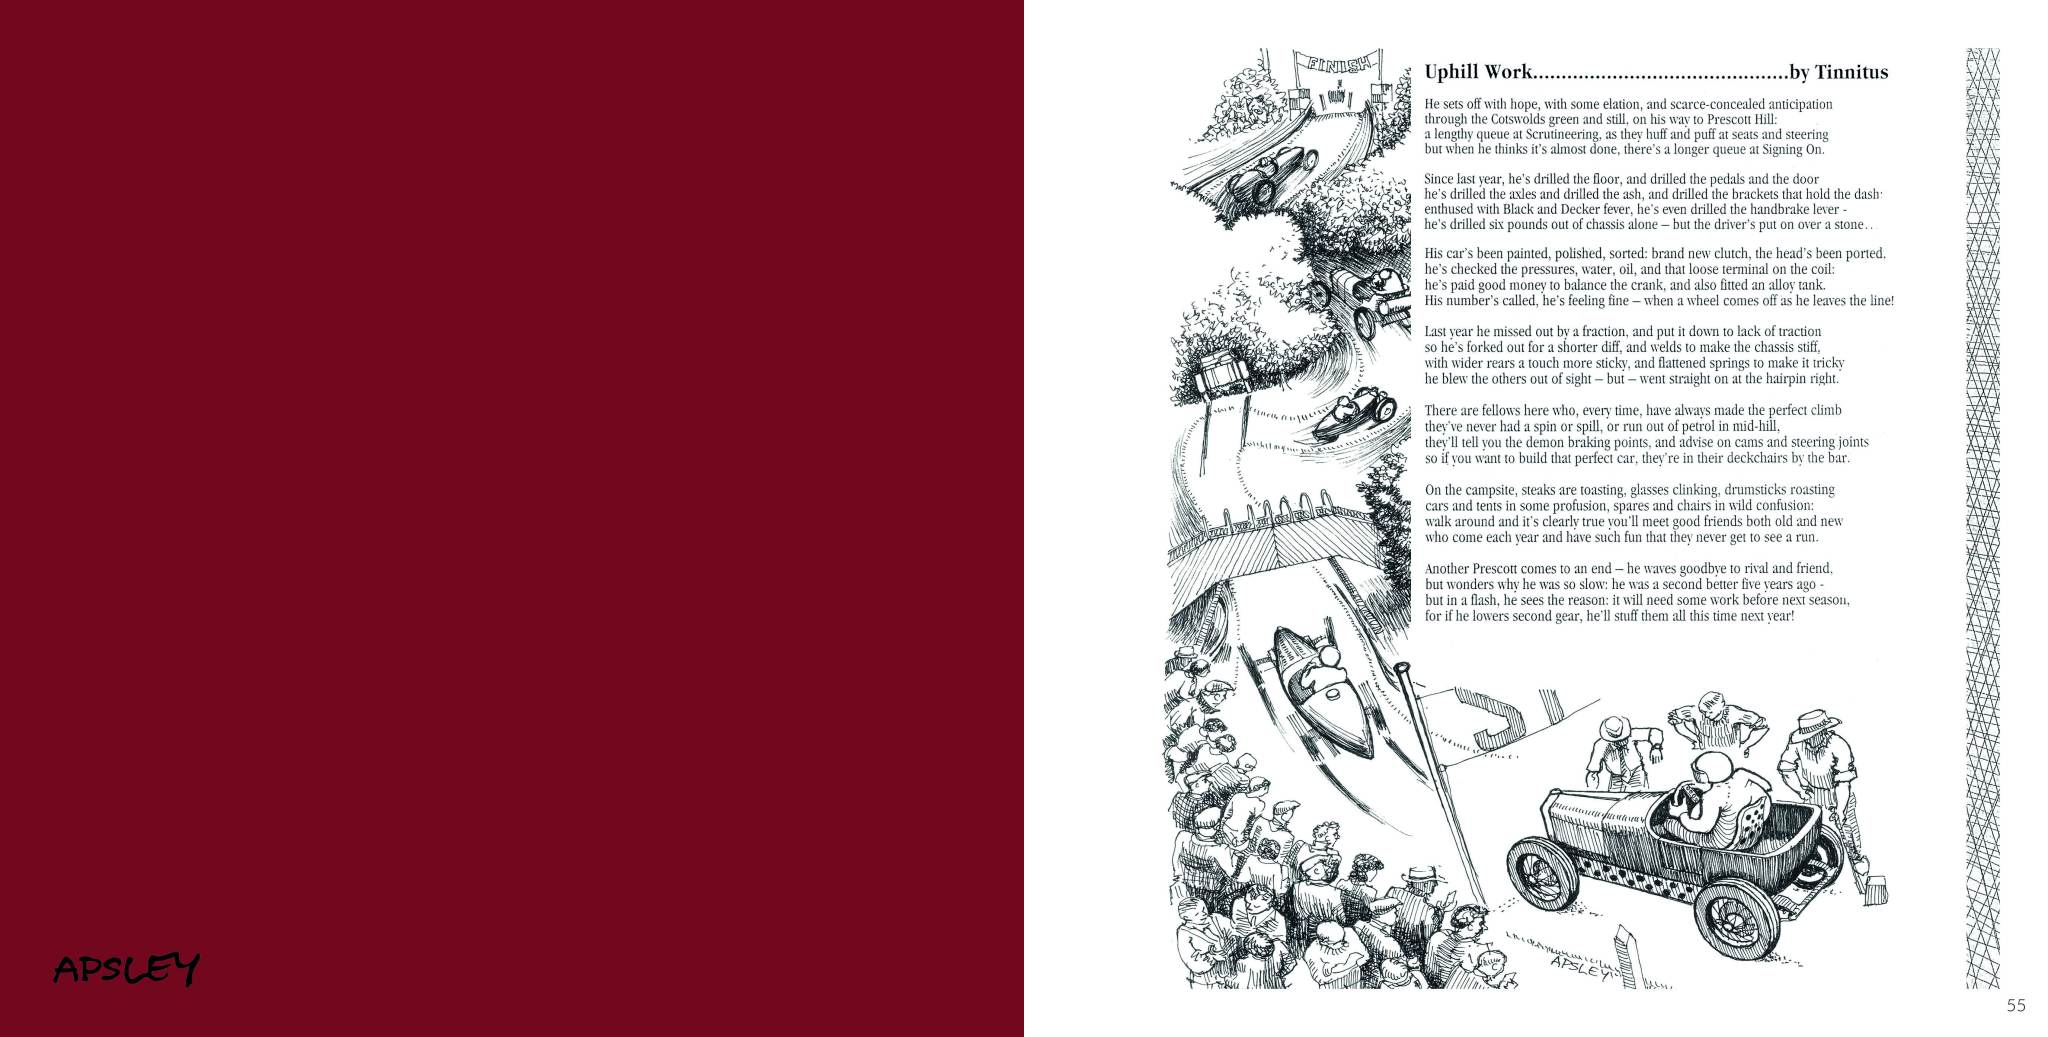 Sample Page | Uphill Workwritten by Tinnitus and Car Darawings by Apsley | Aplsey and Old Cars